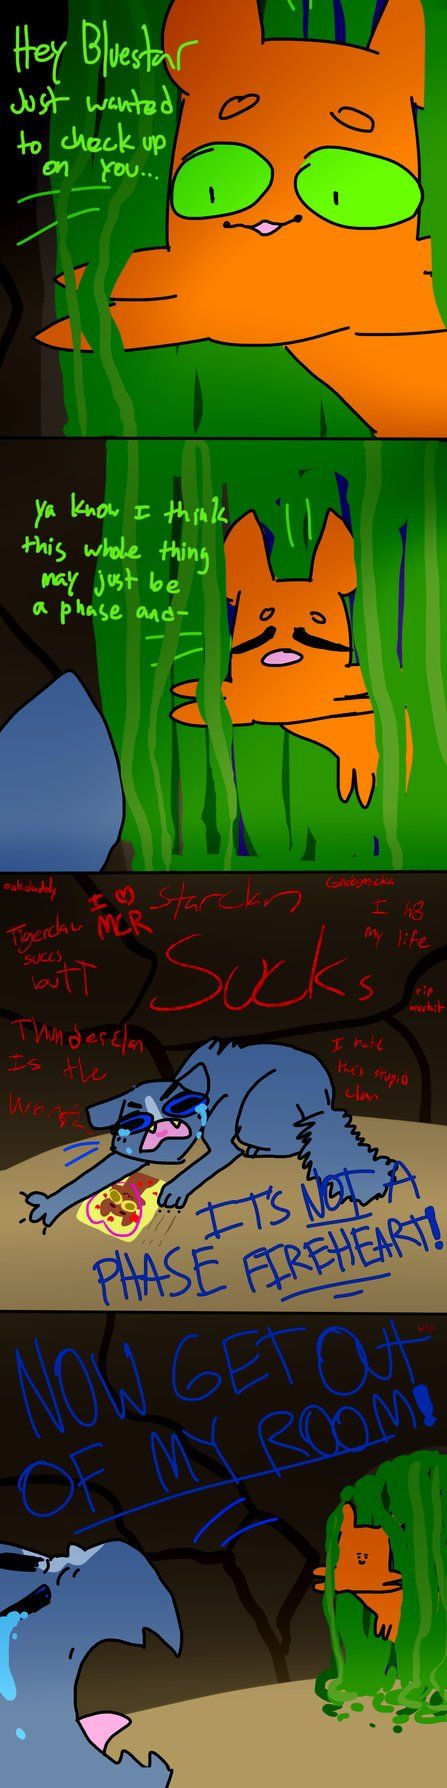 Oh I remember the book when I actually hated Bluestar, believe it or not, when she was a shell of her former self. I hated that she declared a war against StarClan. At least right before she died she regained her confidince and belief in StarClan. Sorry if you like Bluestar. May StarClan light your path!